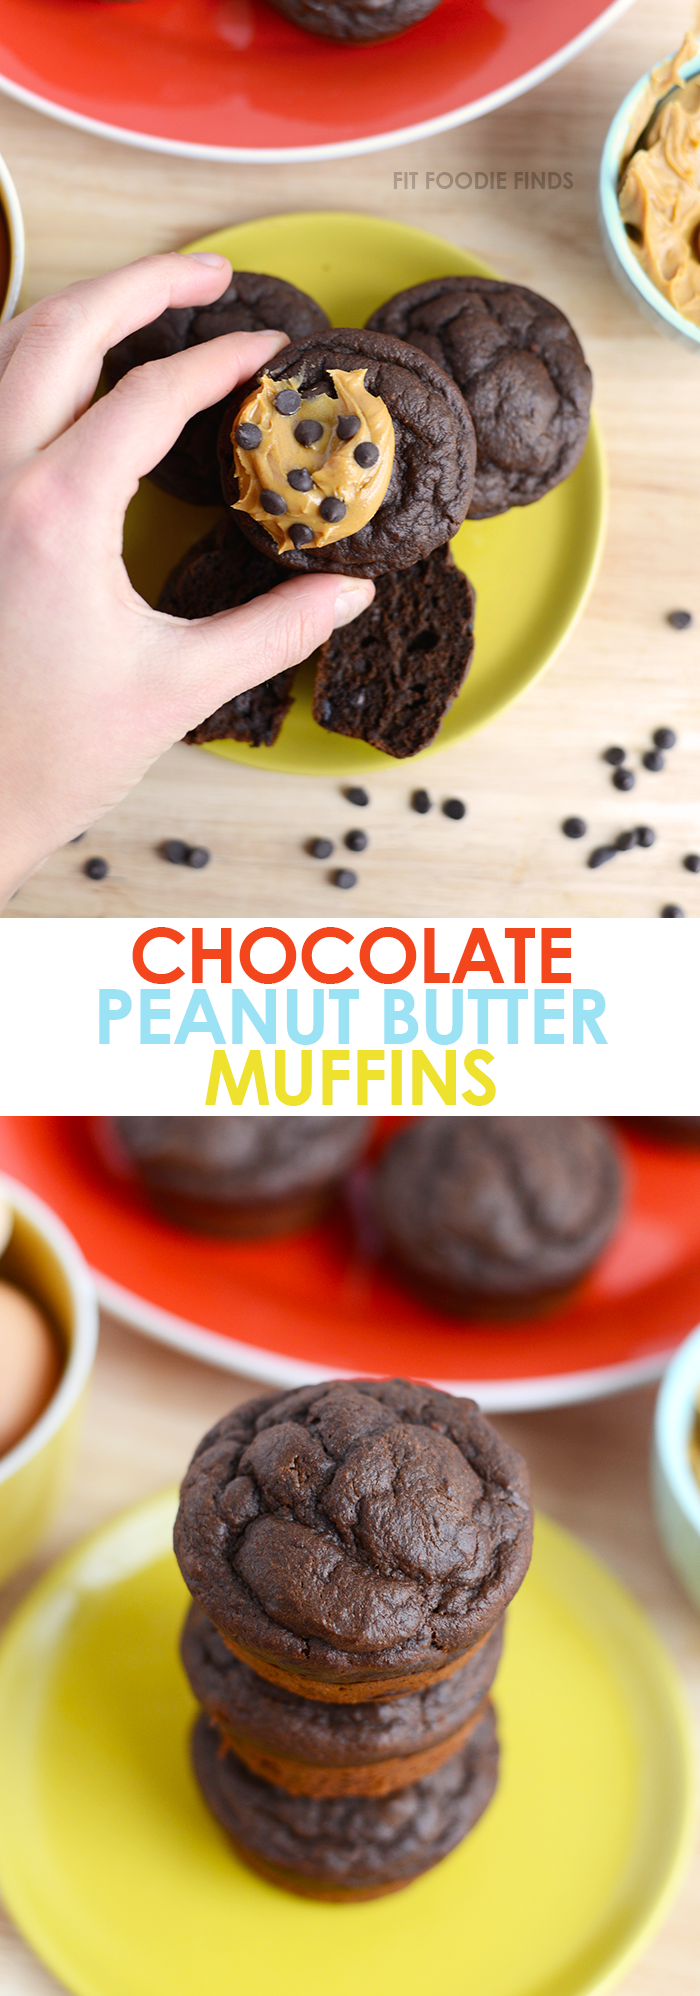 Make these healthy chocolate peanut butter muffins for a 100% whole-grain, no refined-sugar added snack or treat! They're gluten-free and 171 calories!